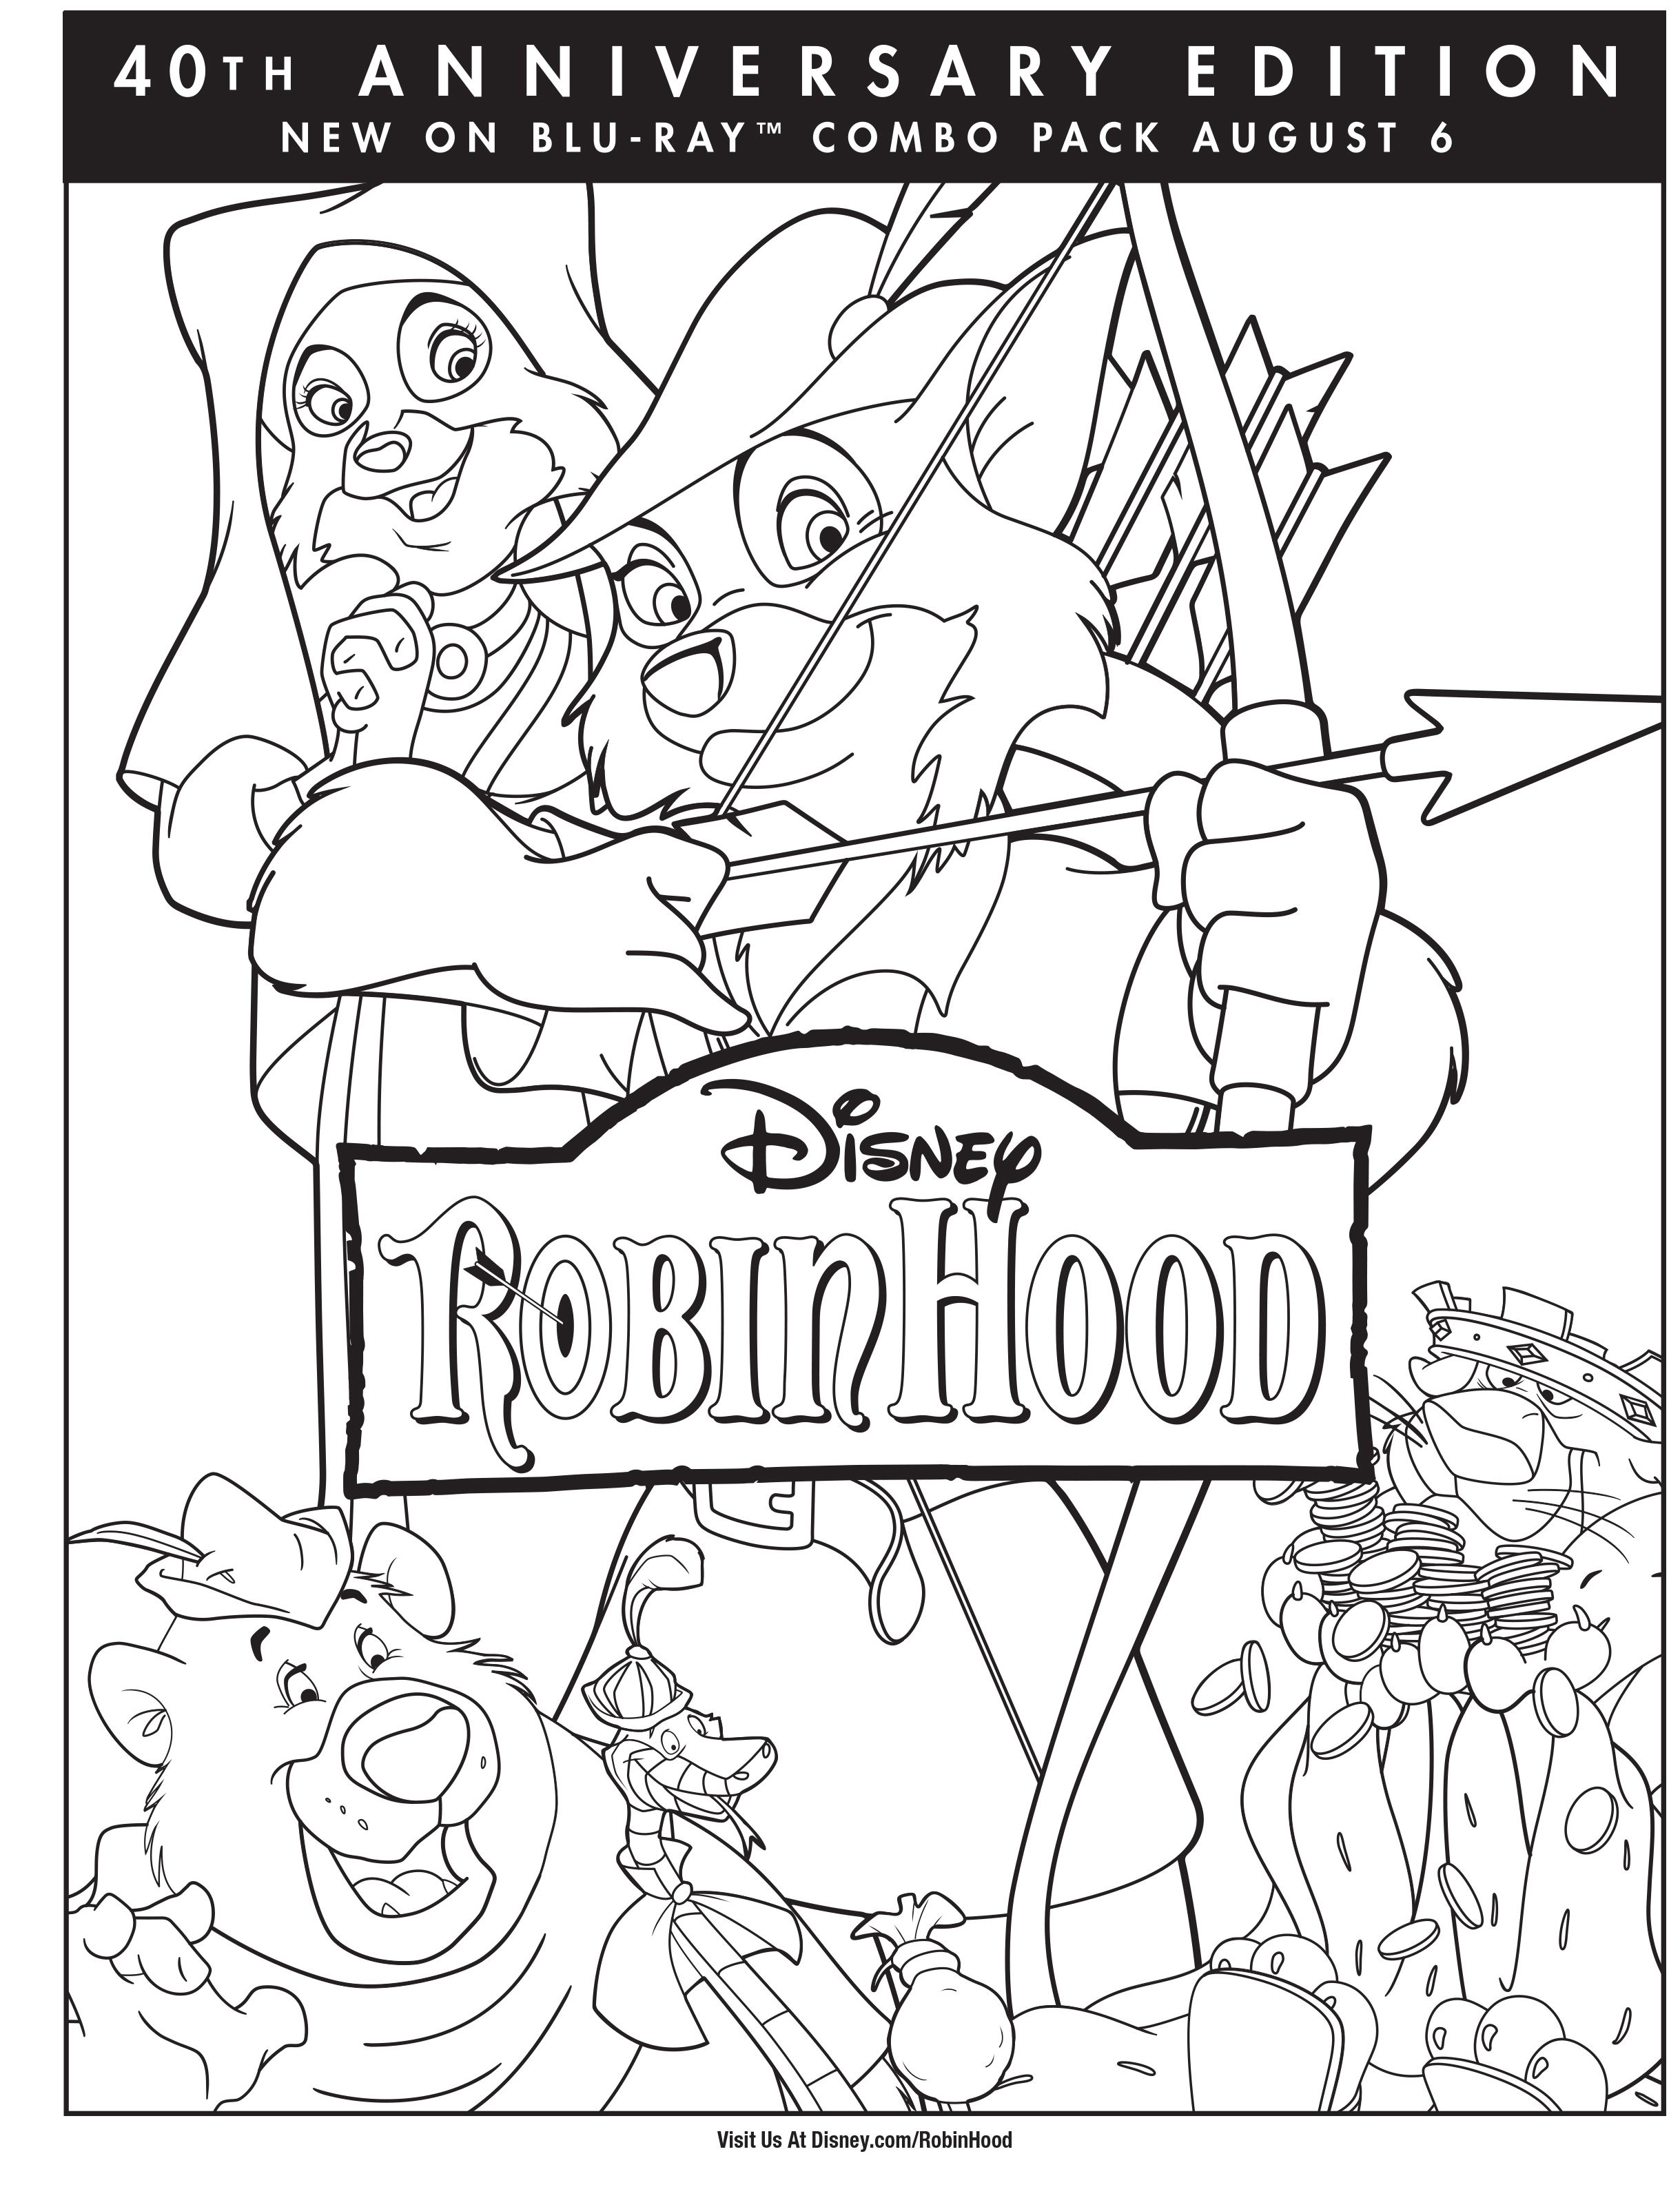 Disney Robin Hood Coloring Pages Robin Hood Coloring Page Coloring Pages Disney Robin Hood Coloring Disney Coloring Pages Coloring Pages Disney Mural